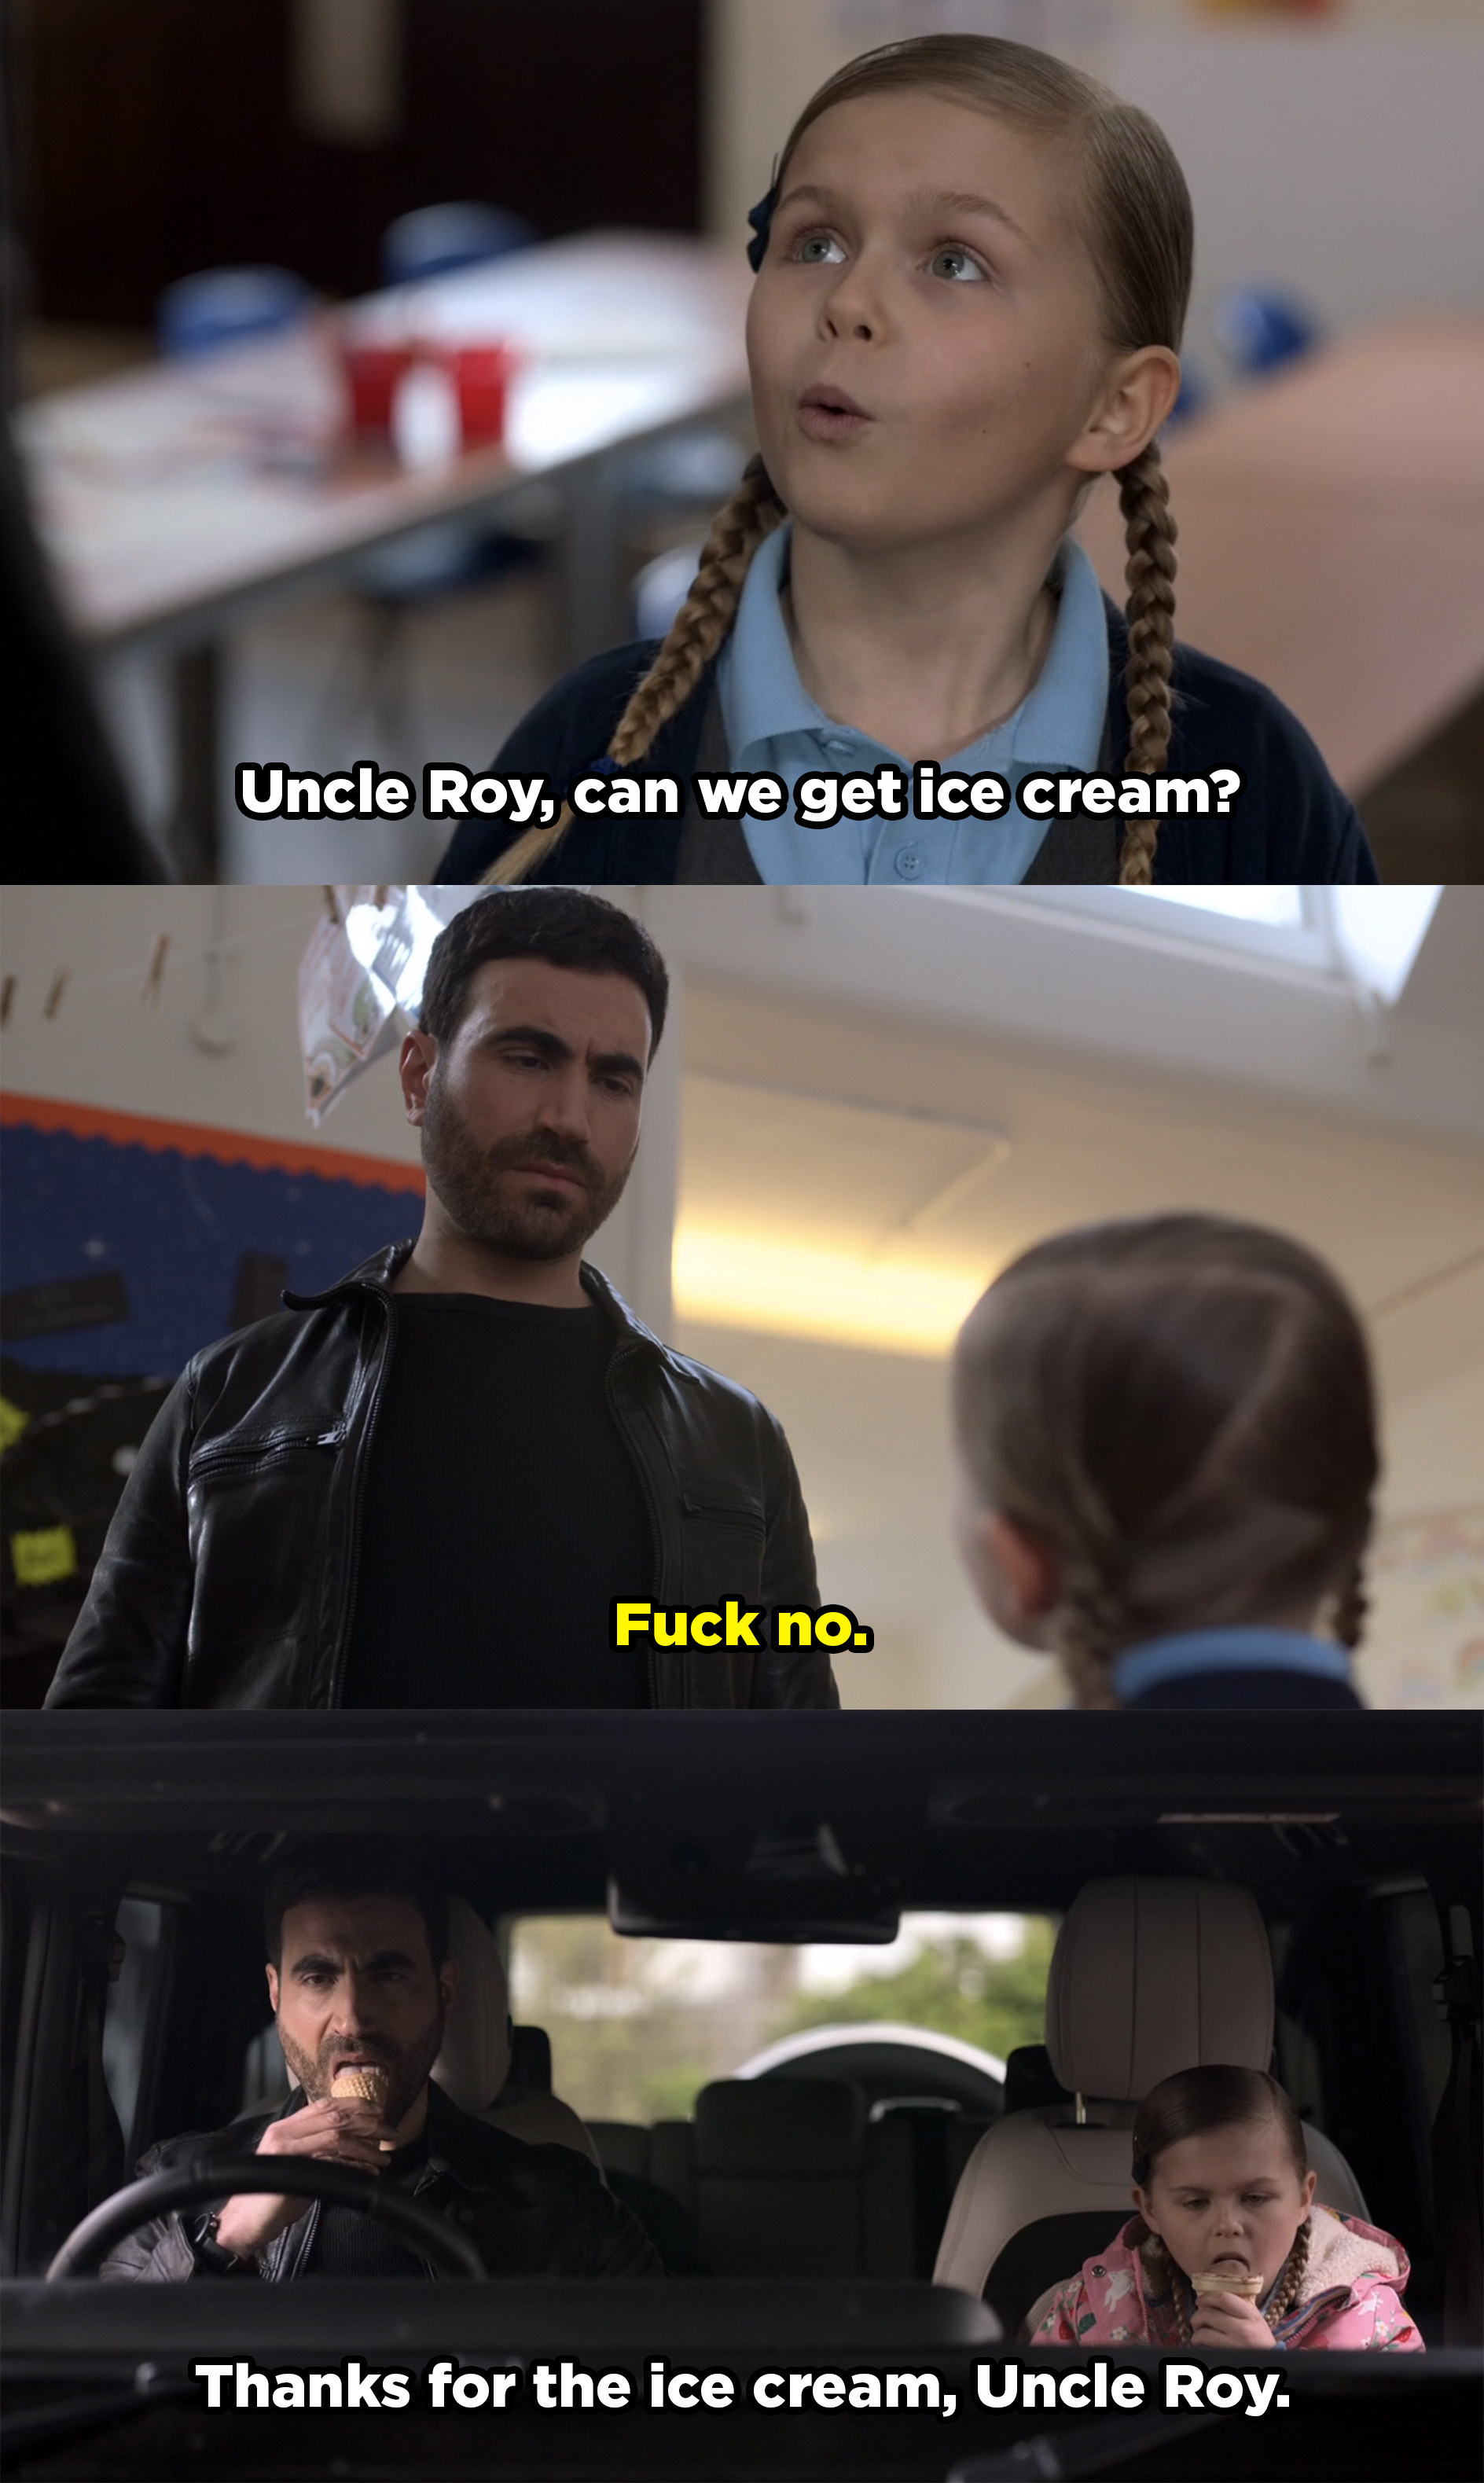 """Phoebe asks Roy if they can get ice cream on the way home from school and he says, """"fuck no."""" But in the next scene they're shown licking ice cream cones in his car."""